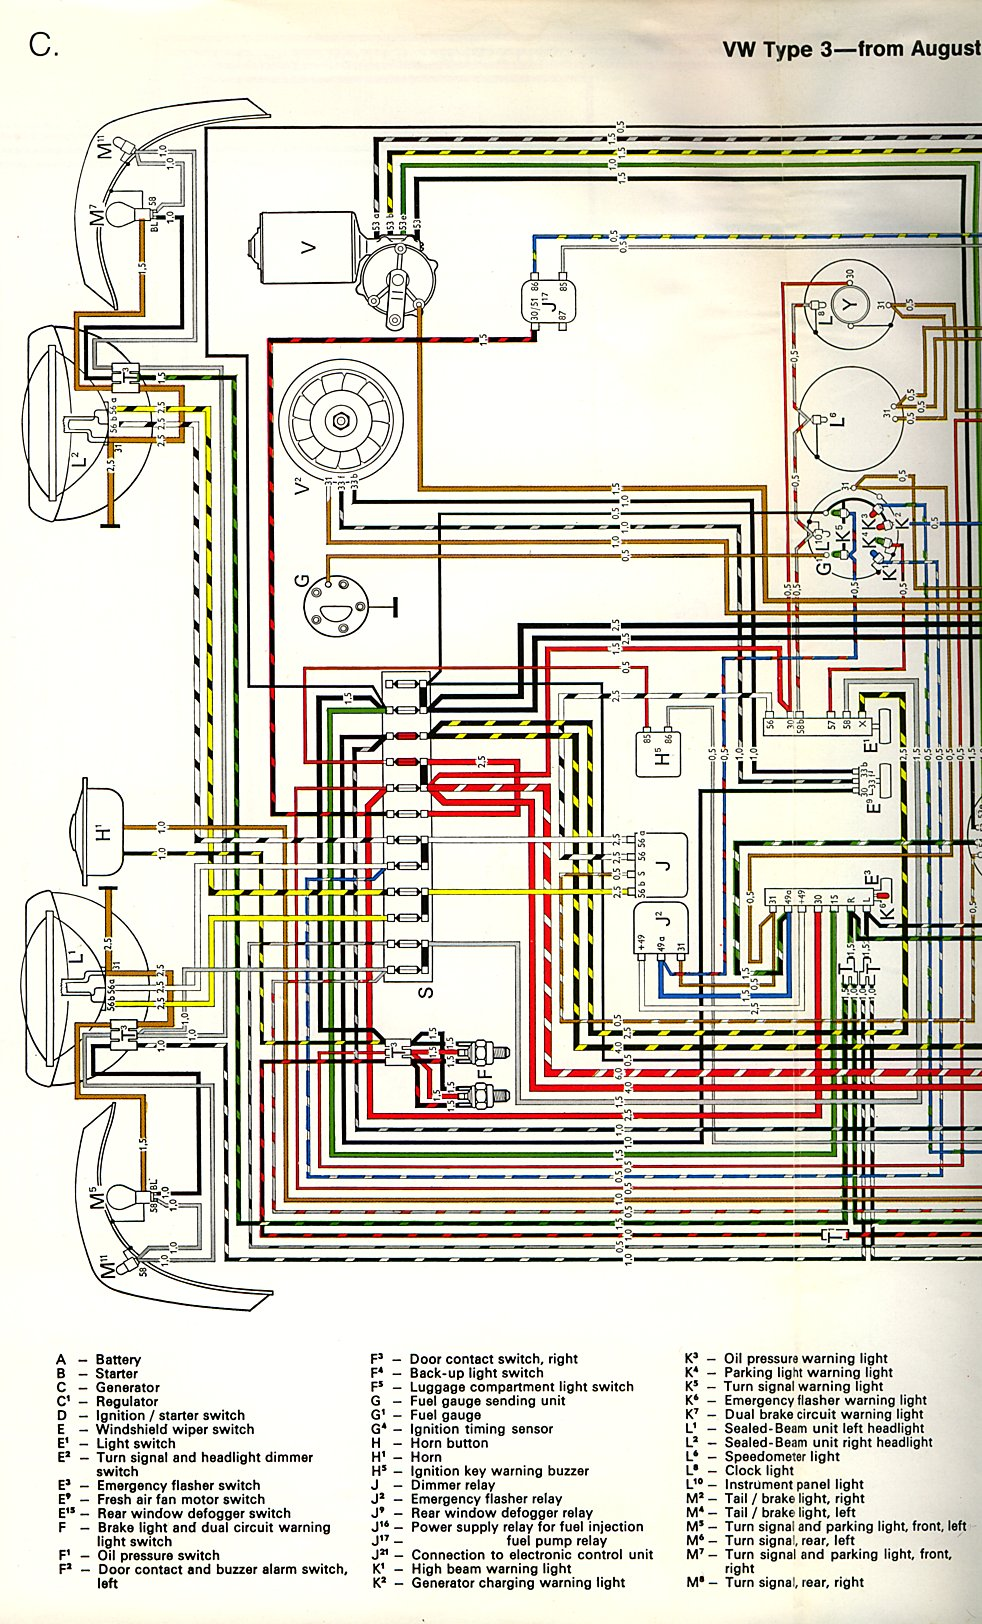 type3_72a thesamba com type 3 wiring diagrams VW Bus Ignition Coil at cos-gaming.co